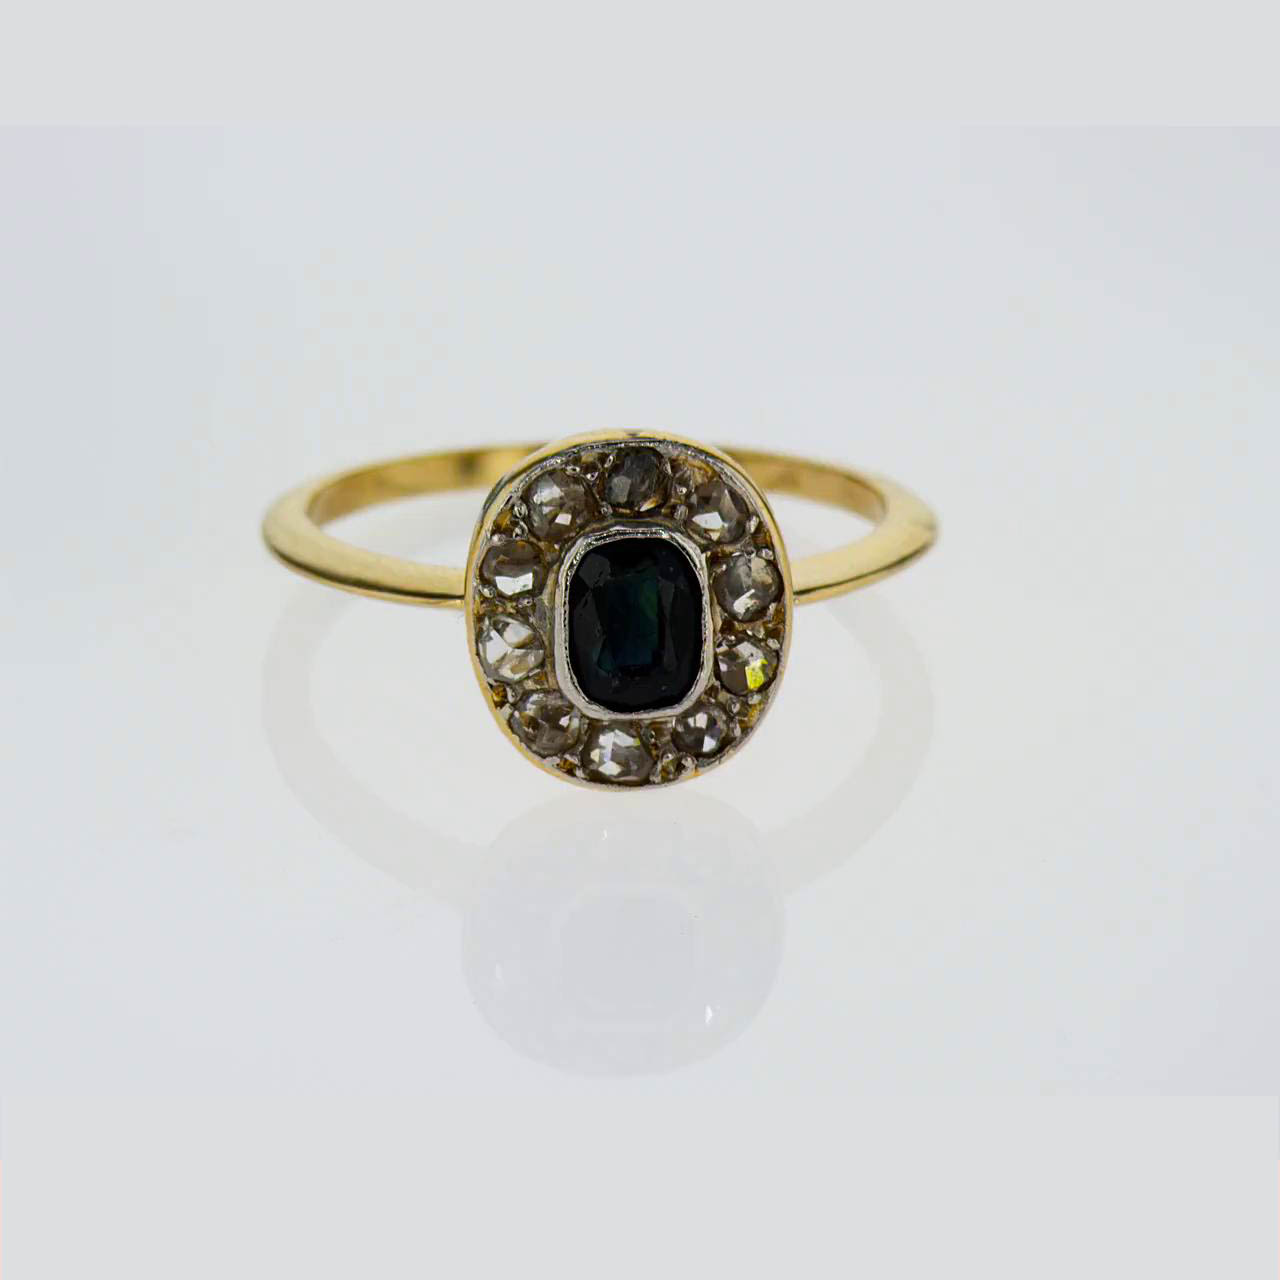 Vintage Cushion Cut Sapphire Engagement Ring, 18k Yellow Gold